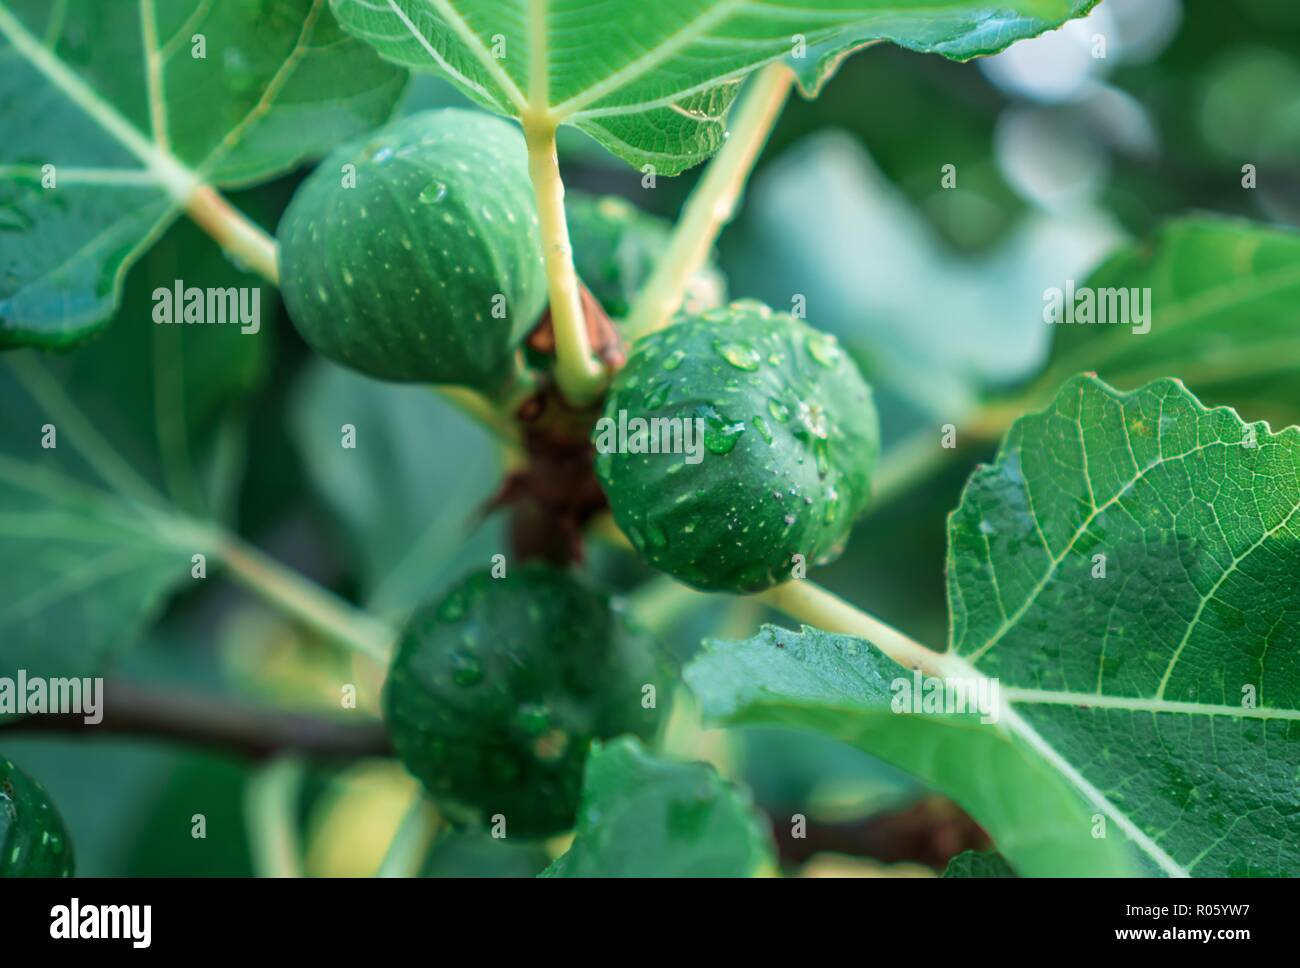 Fruits of unripe figs grow on the tree among the green leaves - Stock Image